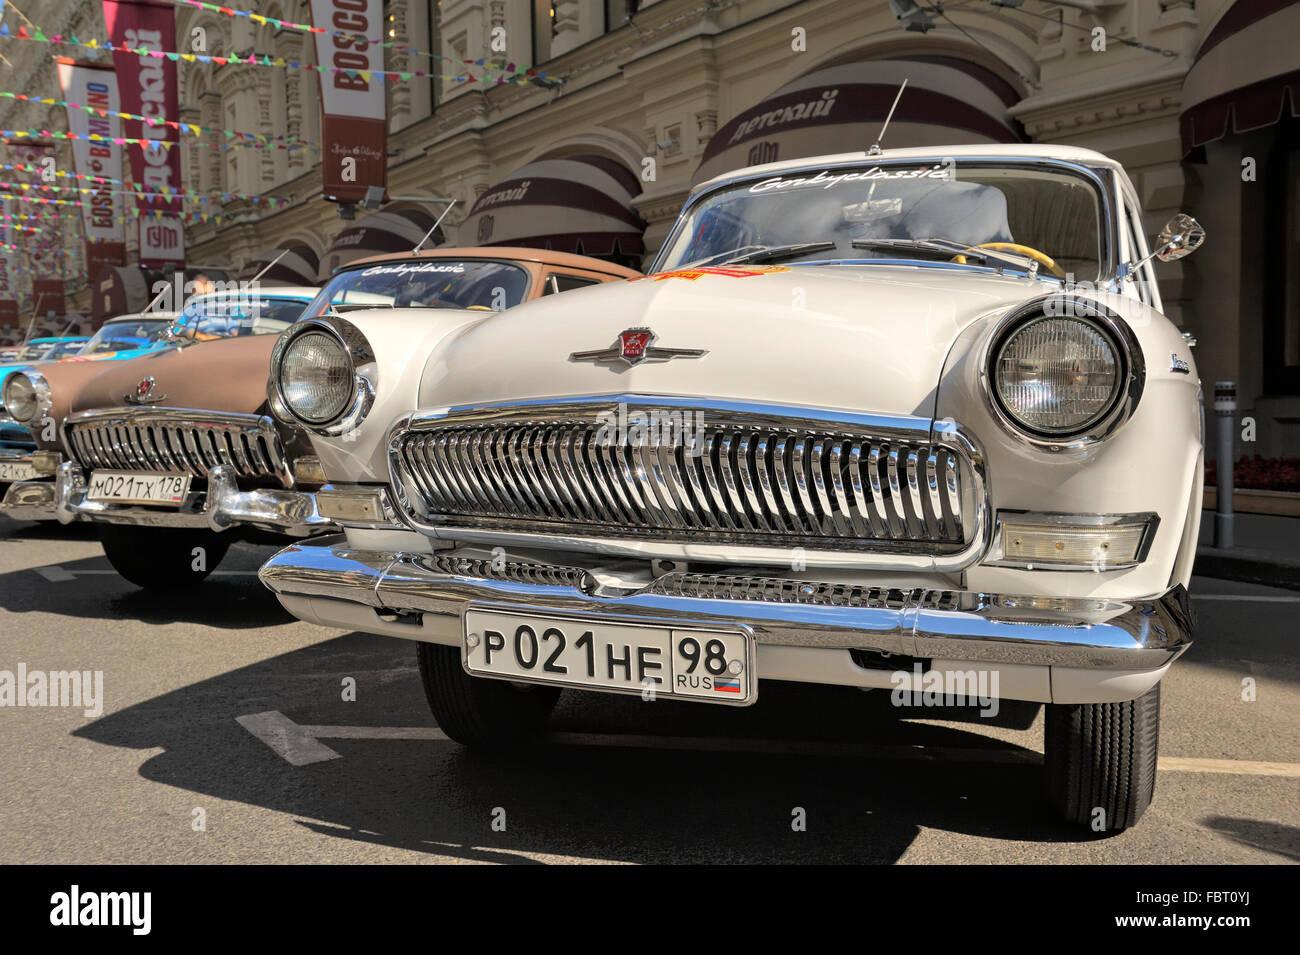 gaz 21 volga cars photos gaz 21 volga cars images alamy. Black Bedroom Furniture Sets. Home Design Ideas